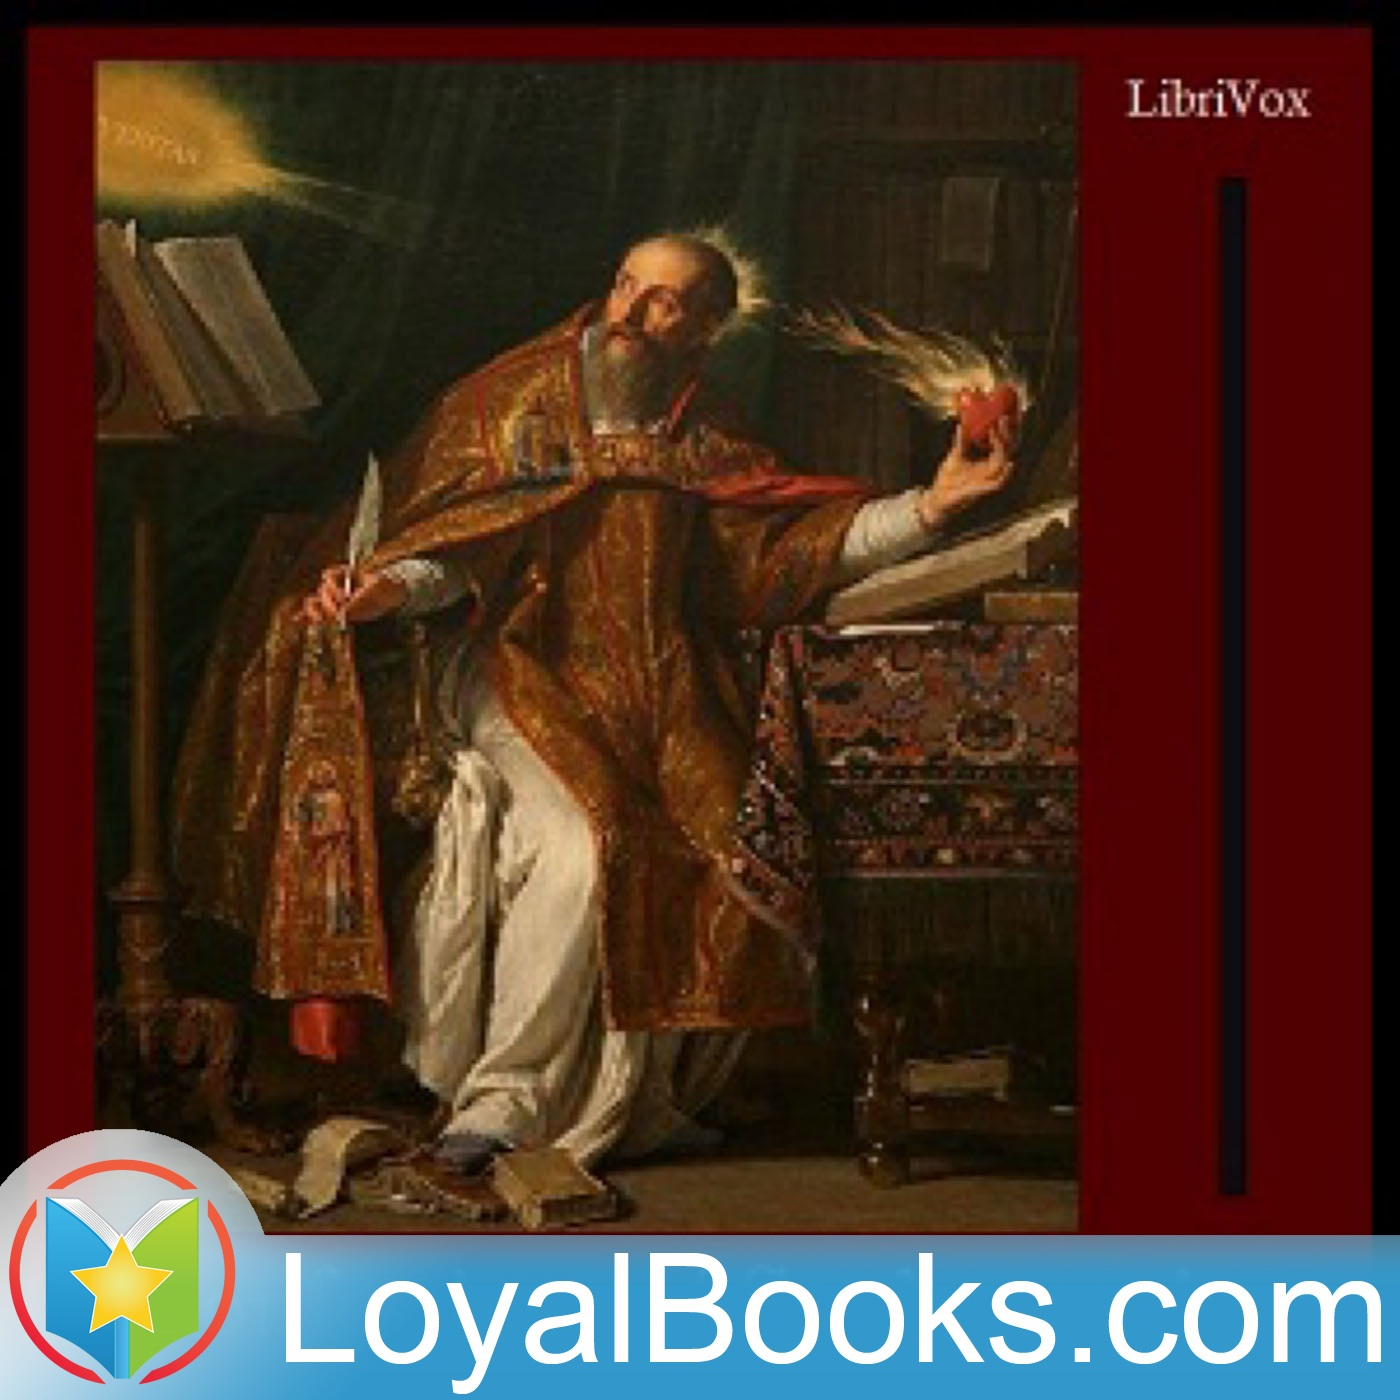 <![CDATA[Confessions by Saint Augustine of Hippo]]>